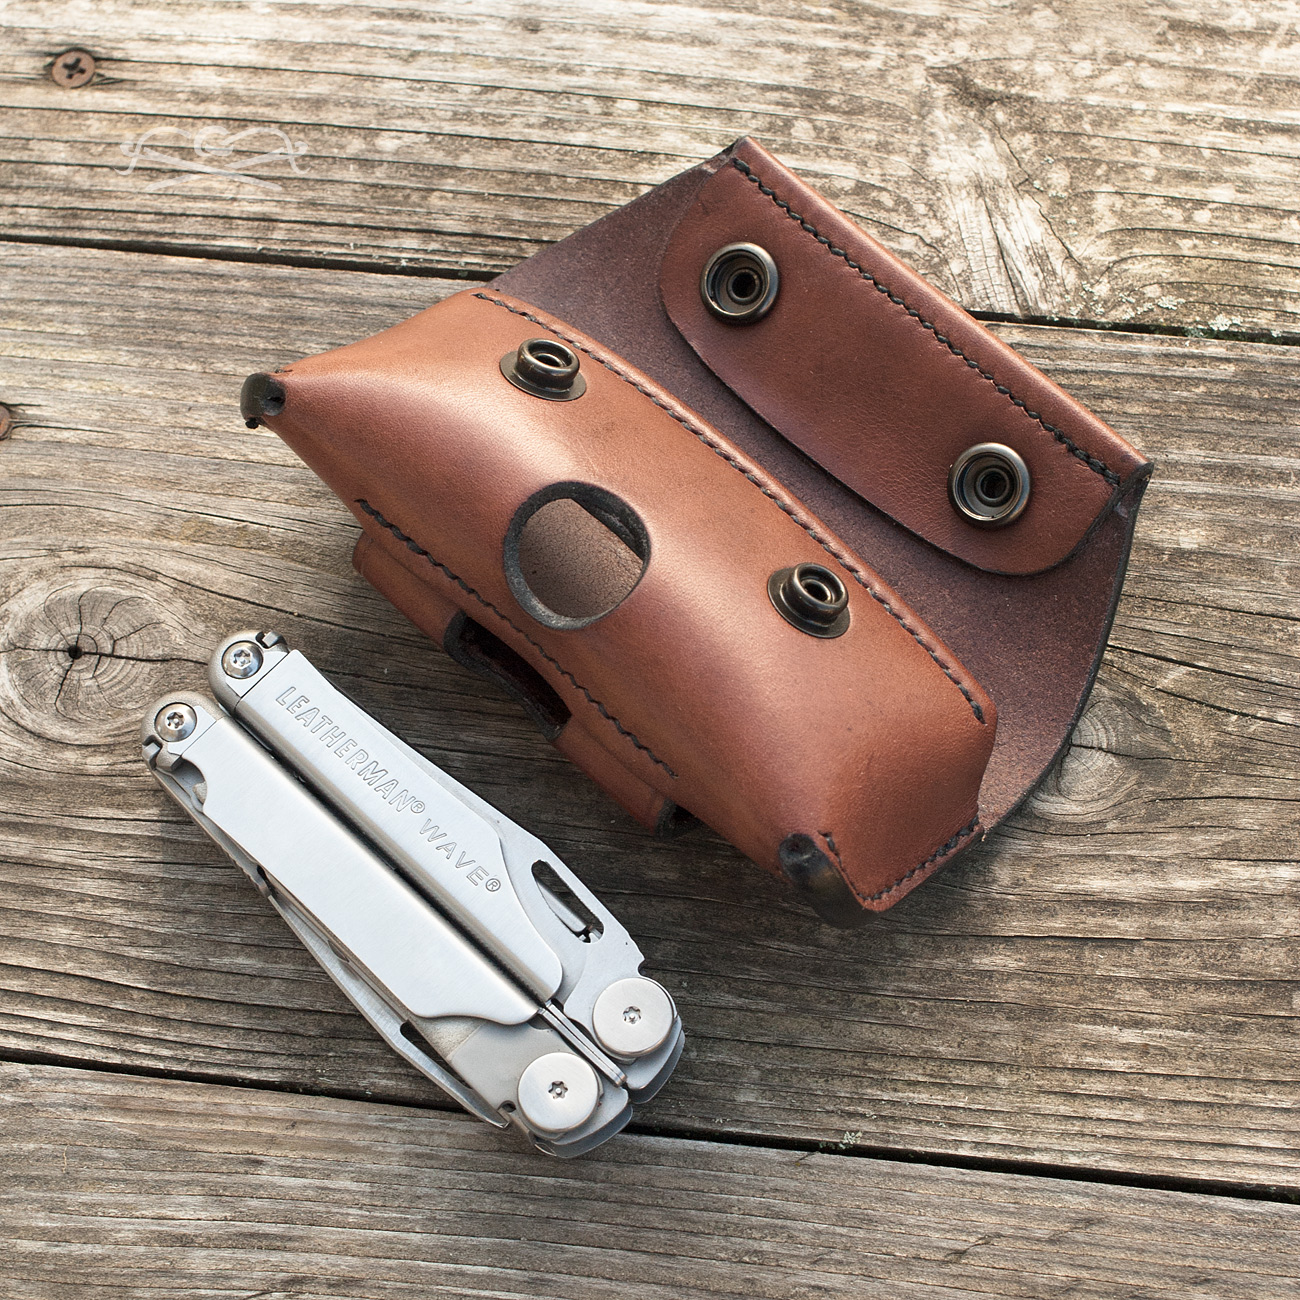 etui_multitool02_img02_HD